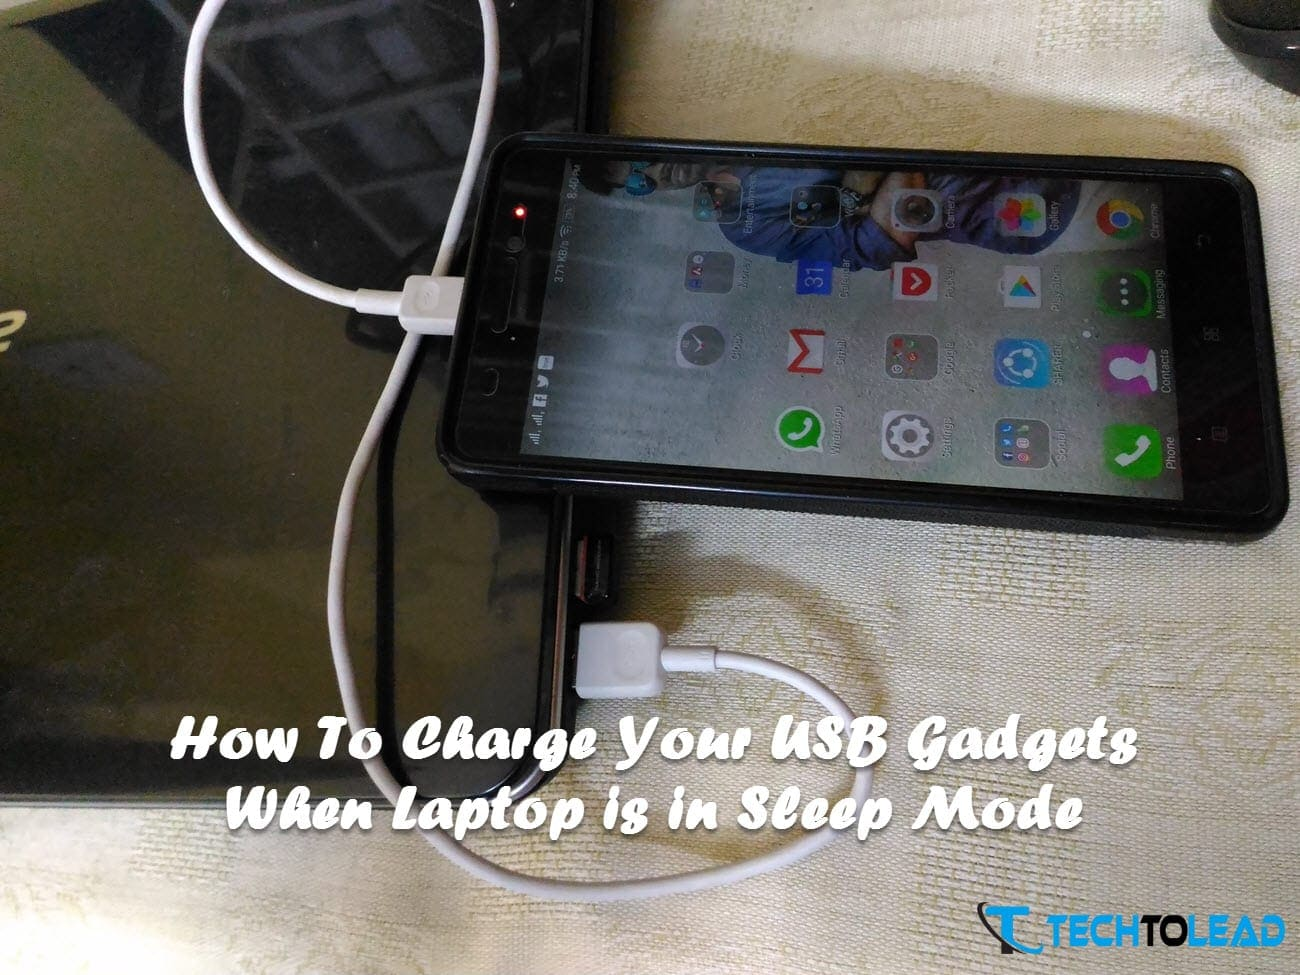 How To Charge Your USB Gadgets When Laptop is in Sleep Mode (2)